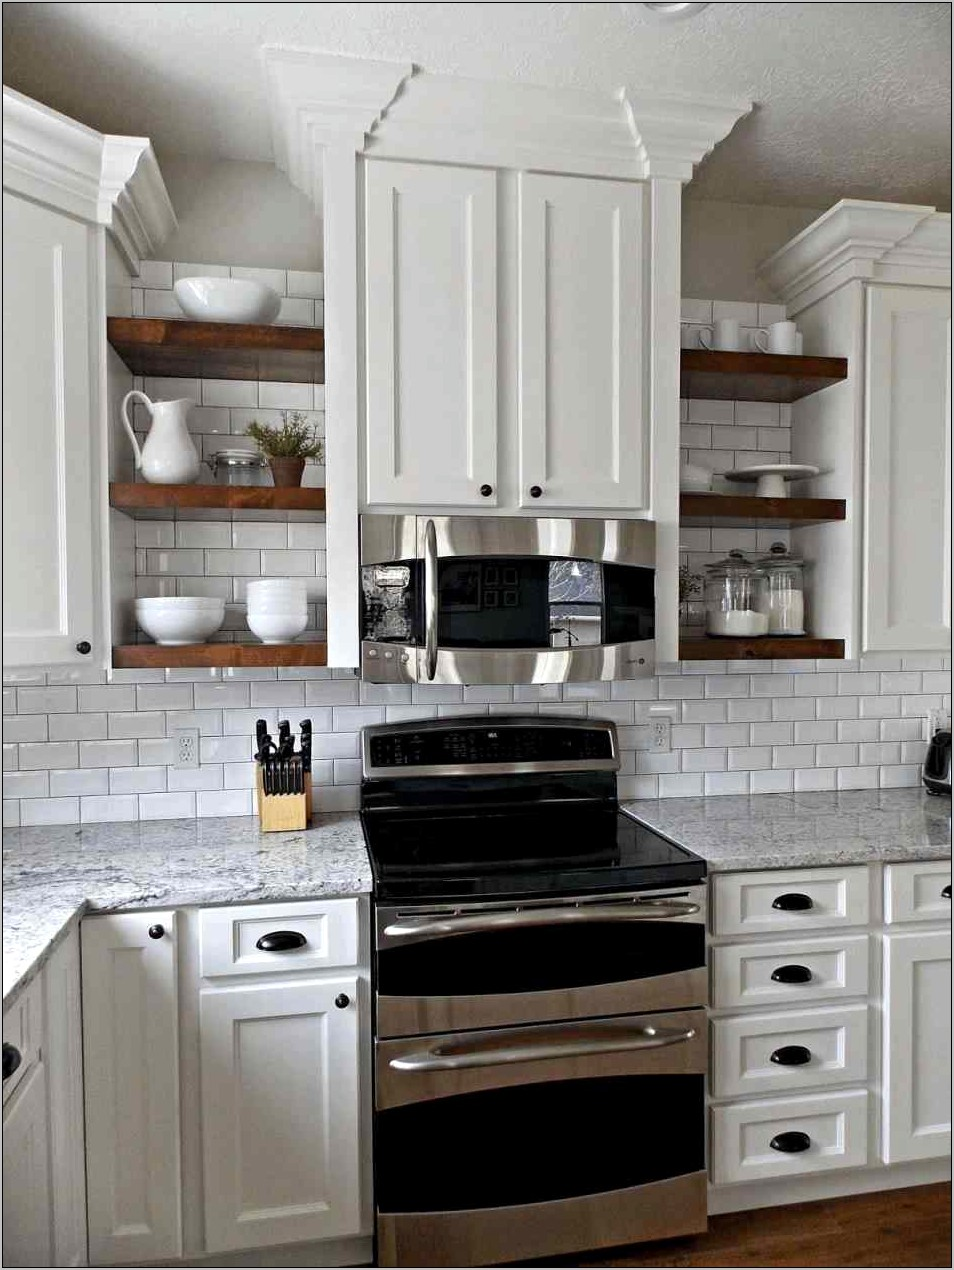 Decorative Items For Kitchen Shelf